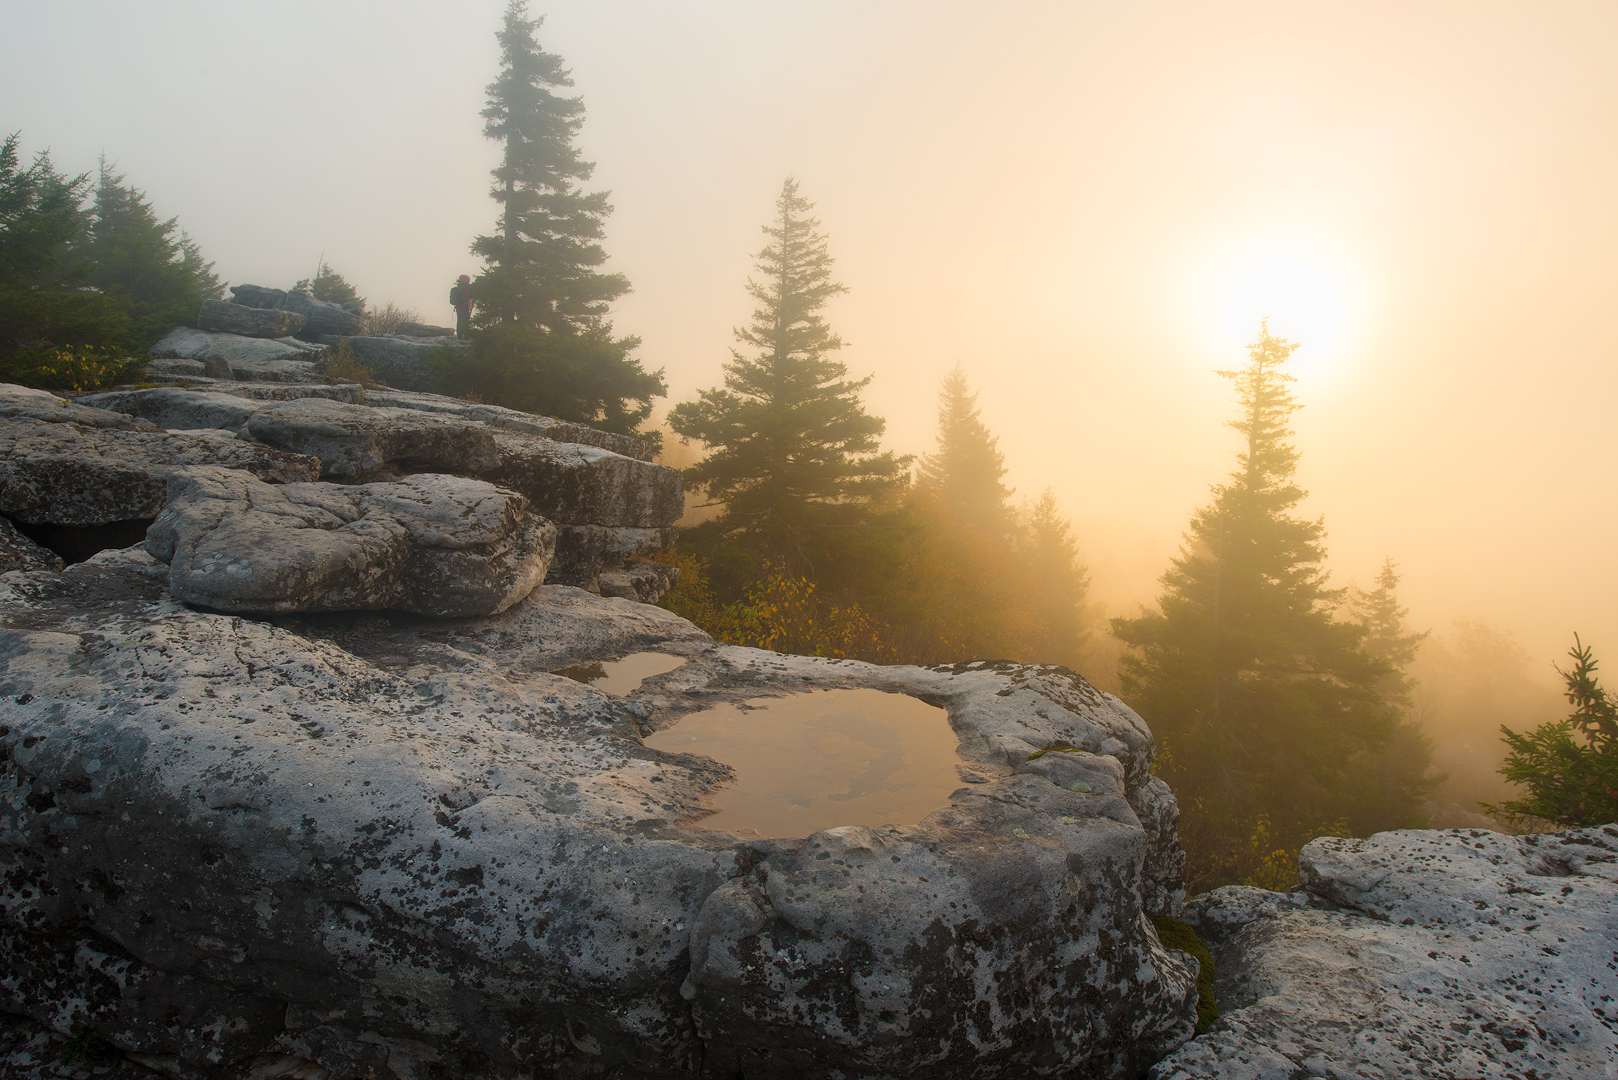 West Virginia, Bear Rocks, Dolly Sods Wilderness, Canaan Valley, Mountain Laurel, Dolly Sods, Allegheny Mountains, Bear Rocks Preserve, Monongahela National Forest, Foggy Morning, Fog, Sun, photo